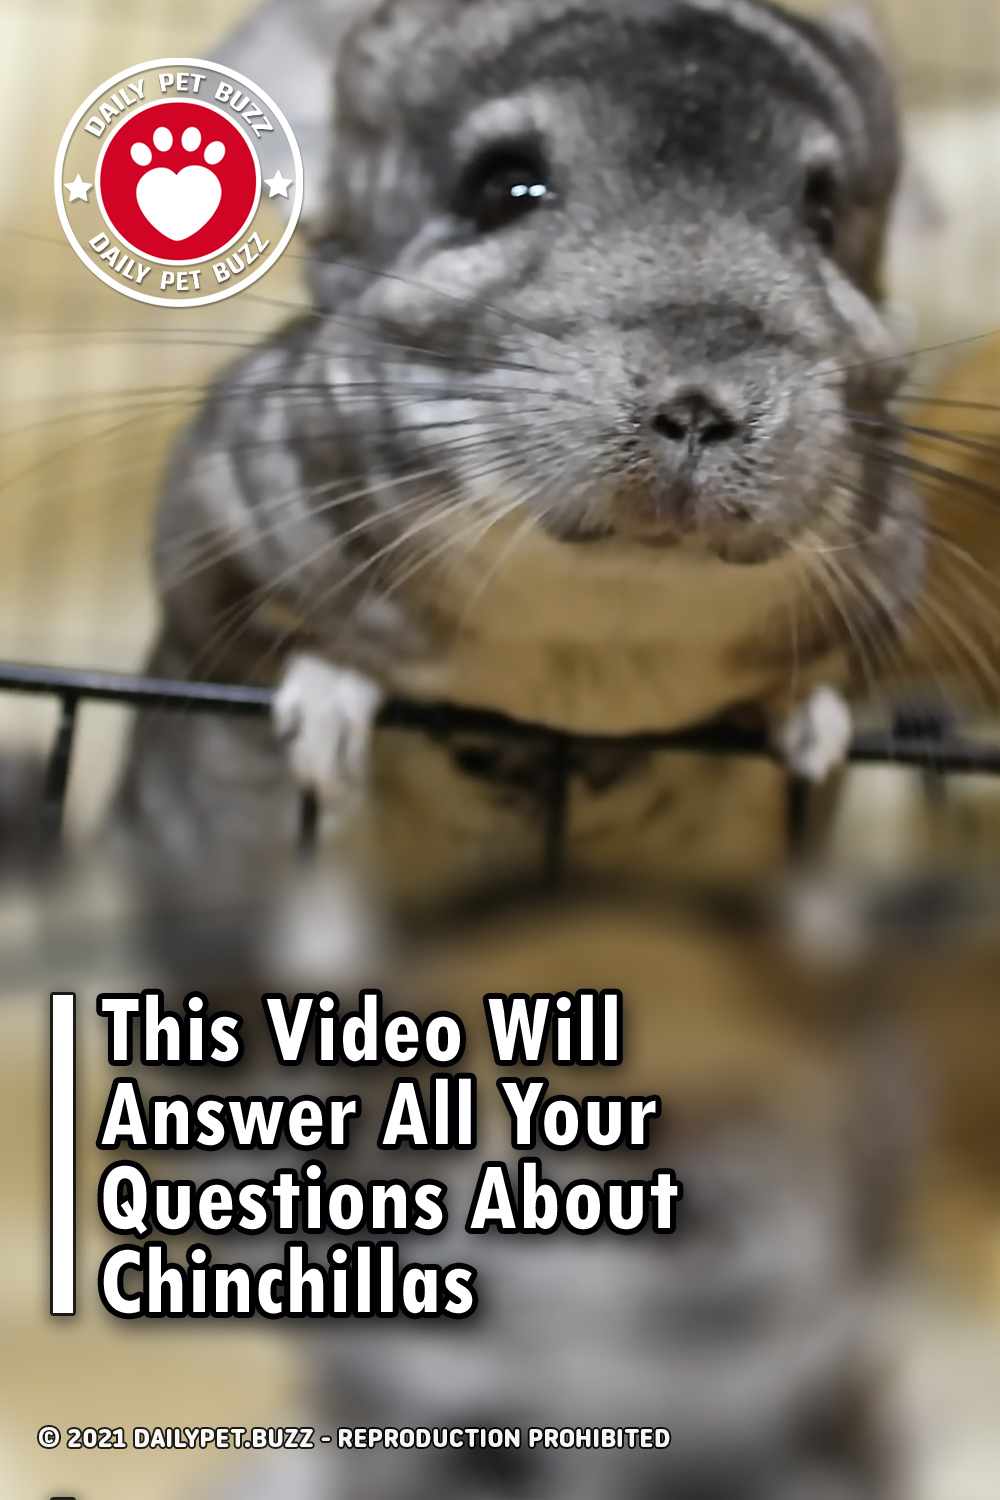 This Video Will Answer All Your Questions About Chinchillas